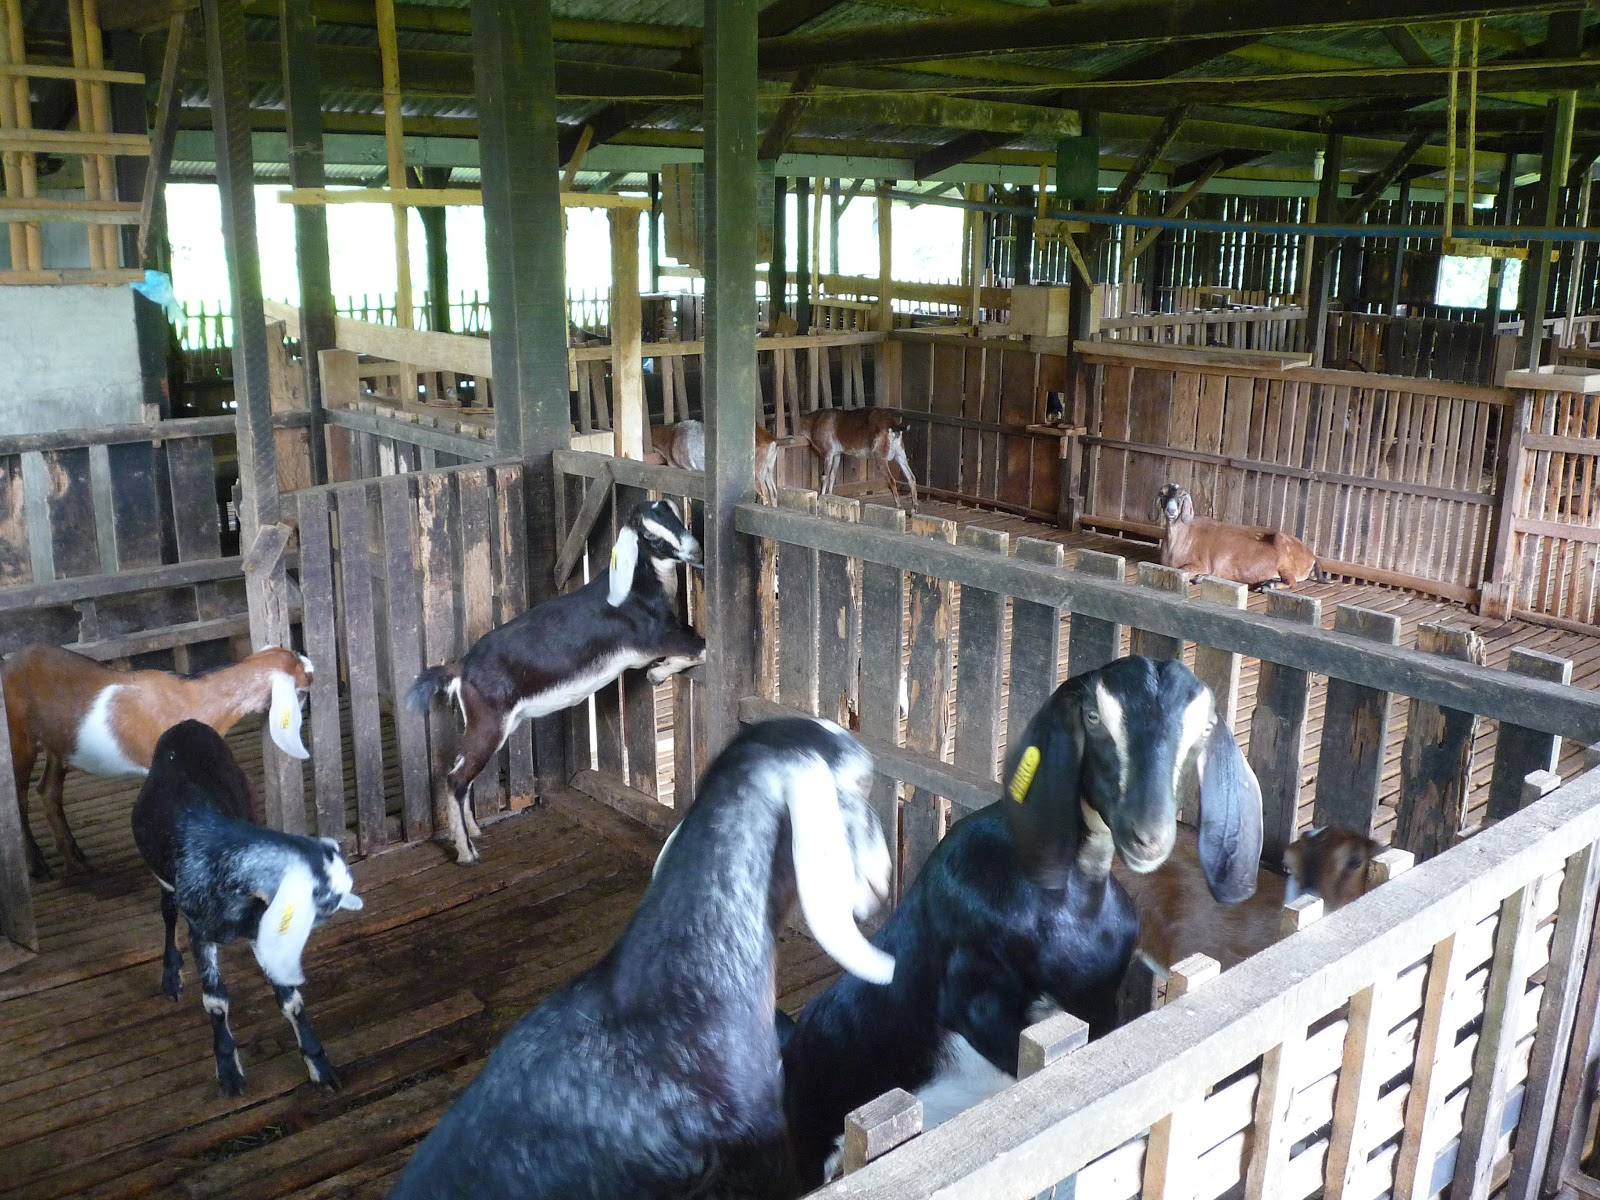 Business Plan | Nigerian Entrepreneur: Goat Farming Business Plans ...